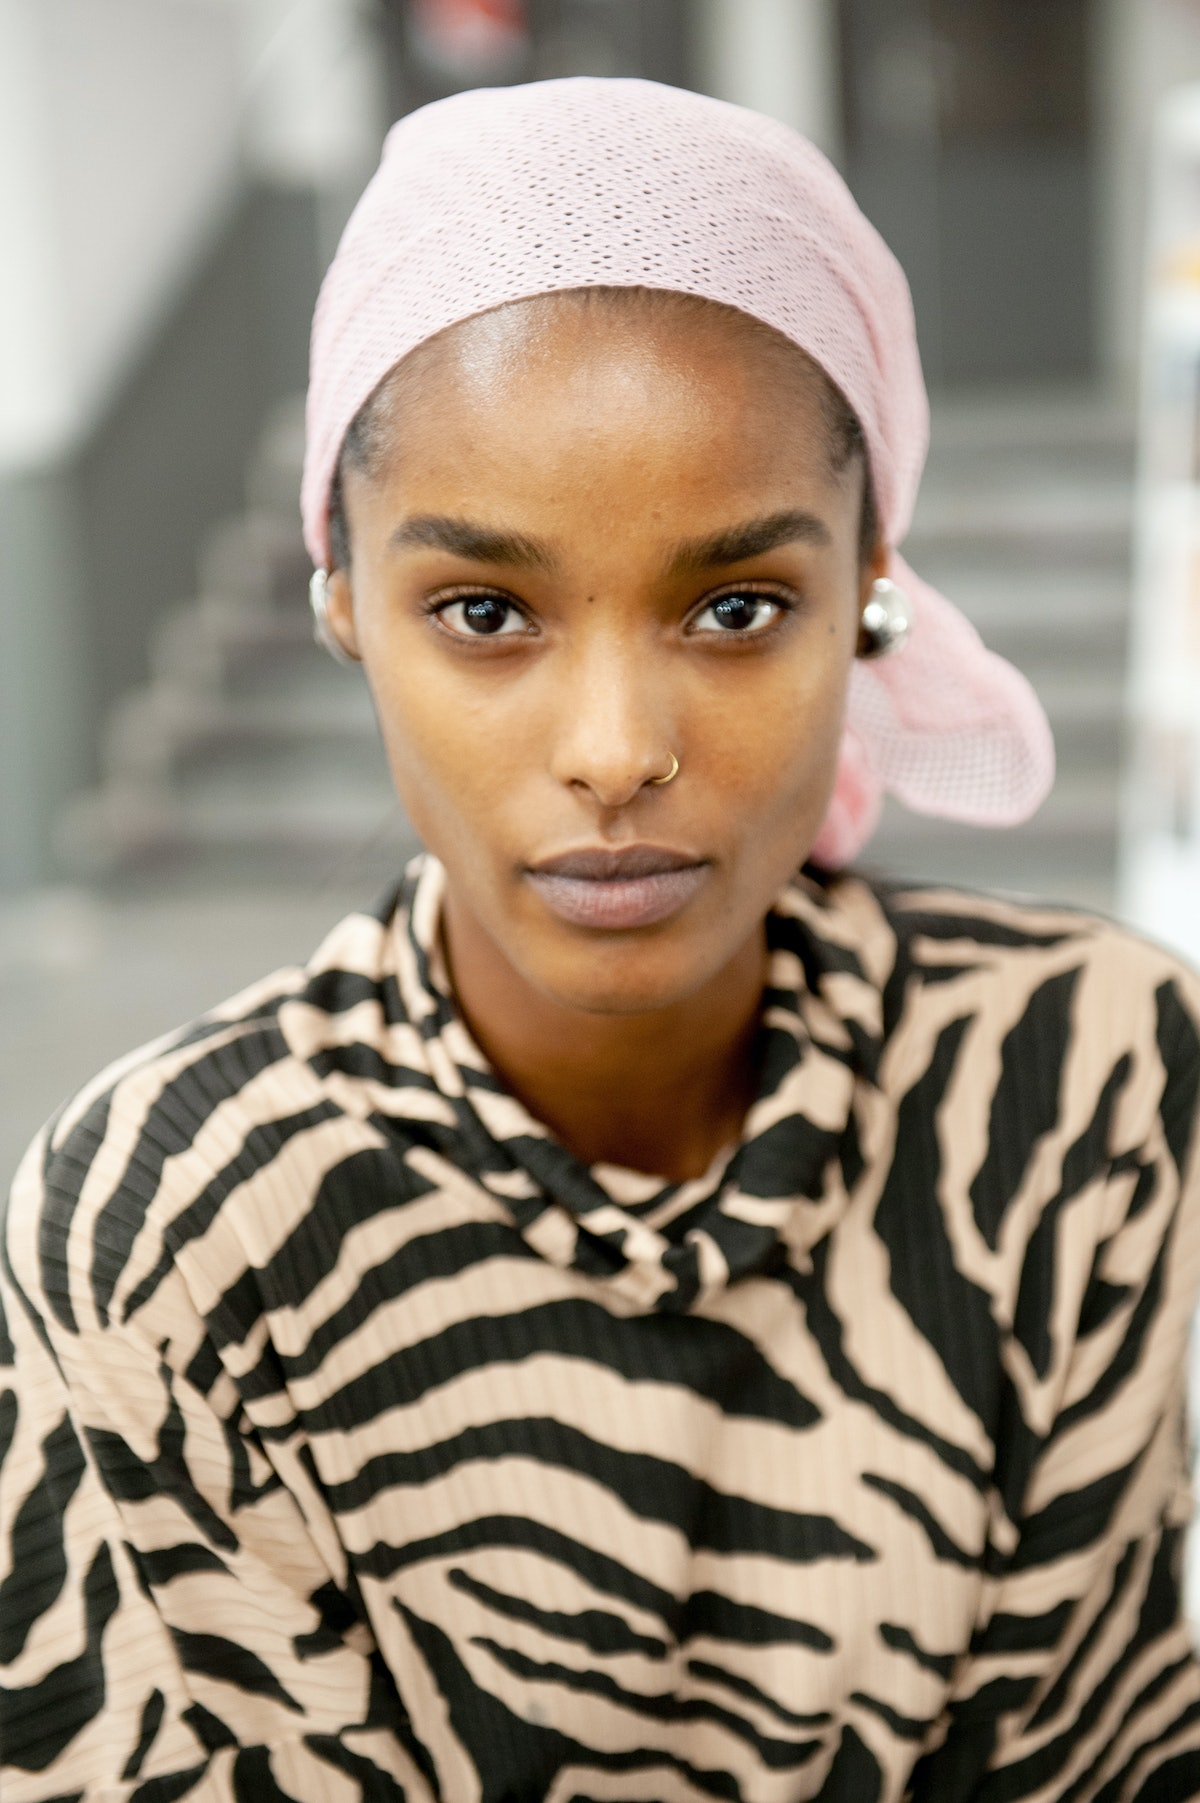 PARIS, FRANCE - MARCH 04: (EDITORIAL USE ONLY) A model prepares backstage prior to the Coperni show ...